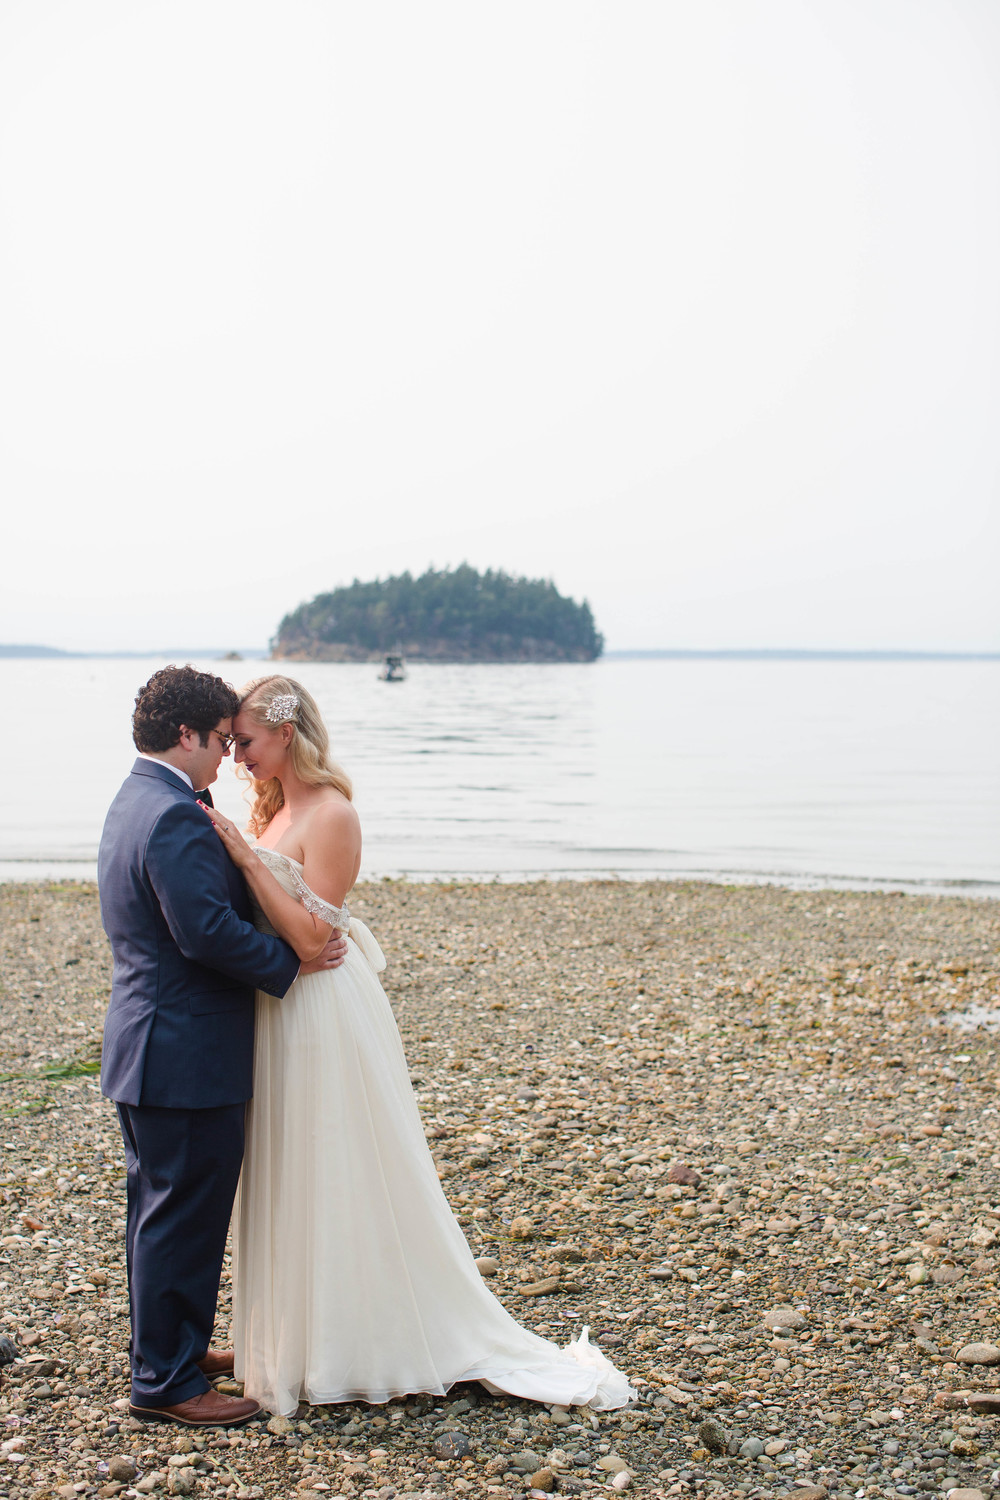 Courtney+Matt_Bellingham+Wedding_Seattle+Wedding+Photographer110.jpg